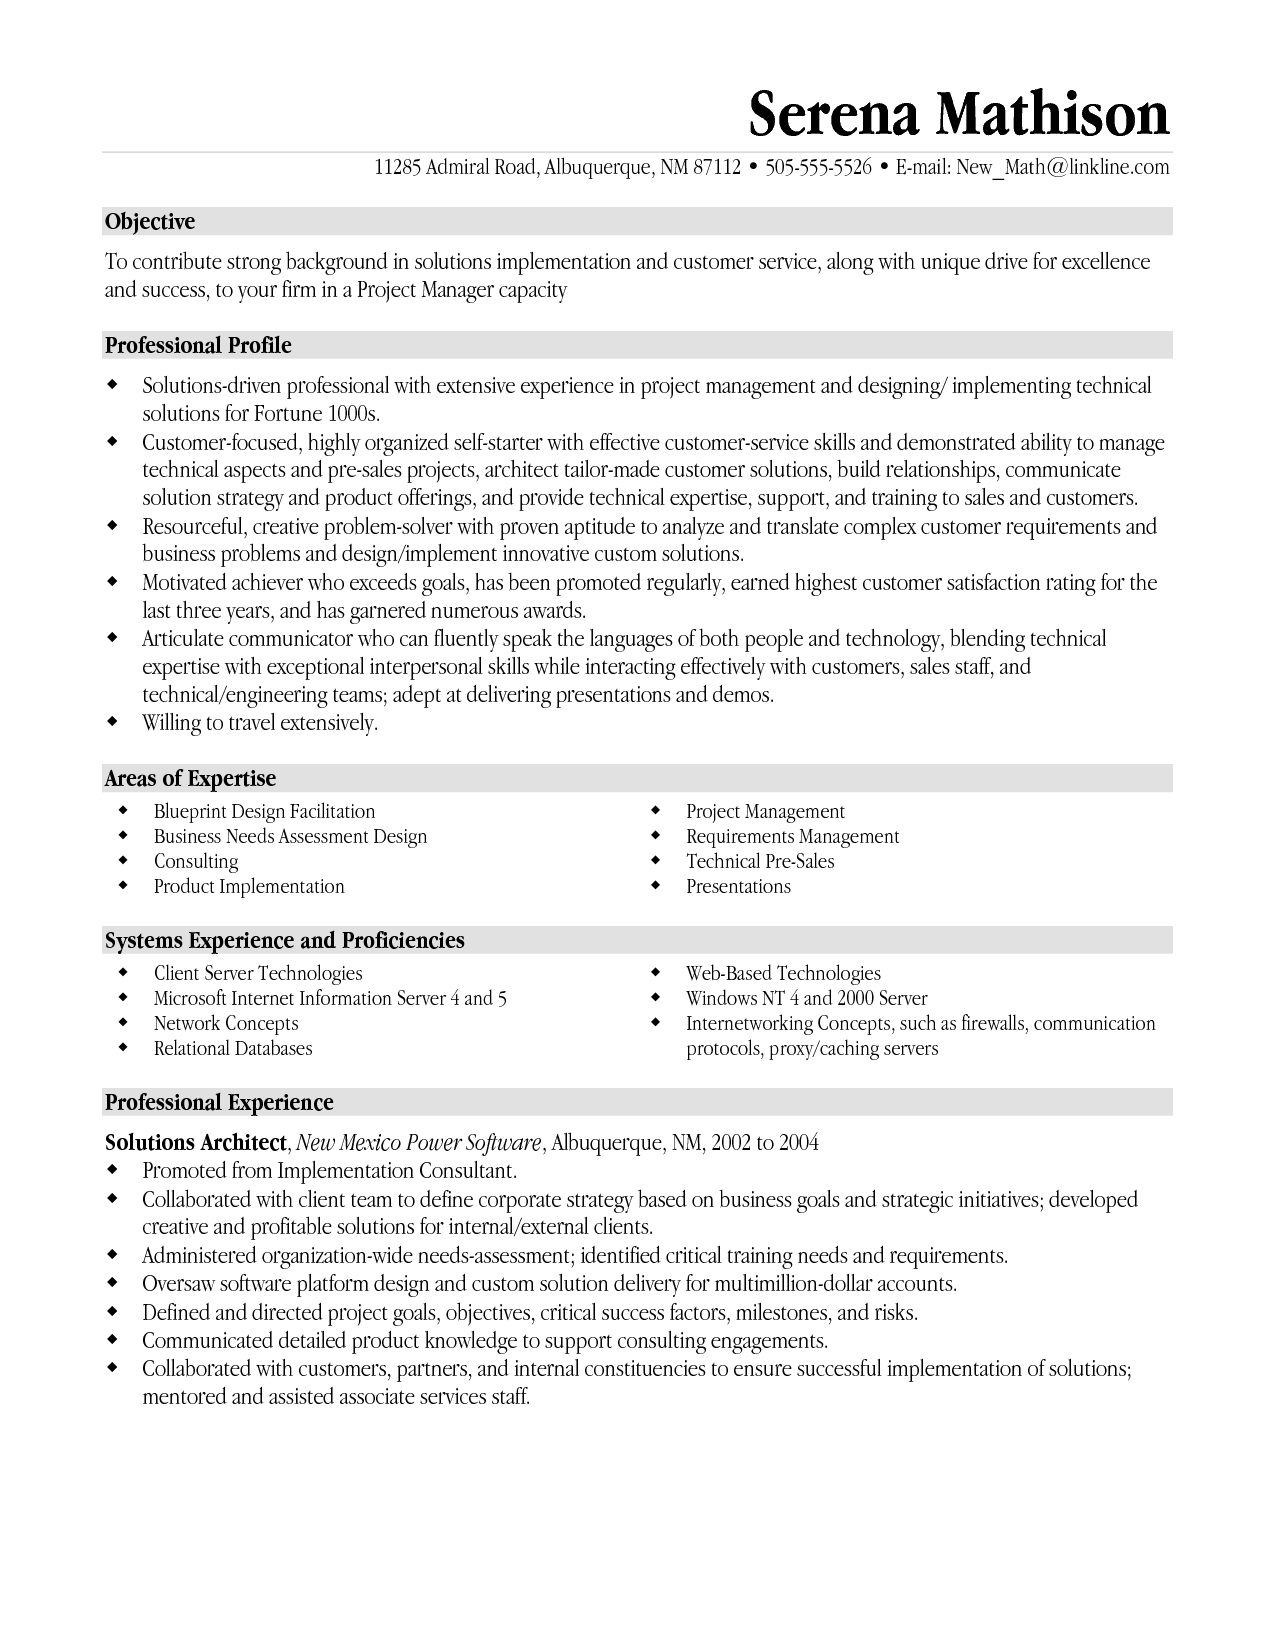 resume templates project manager | project management resume ...